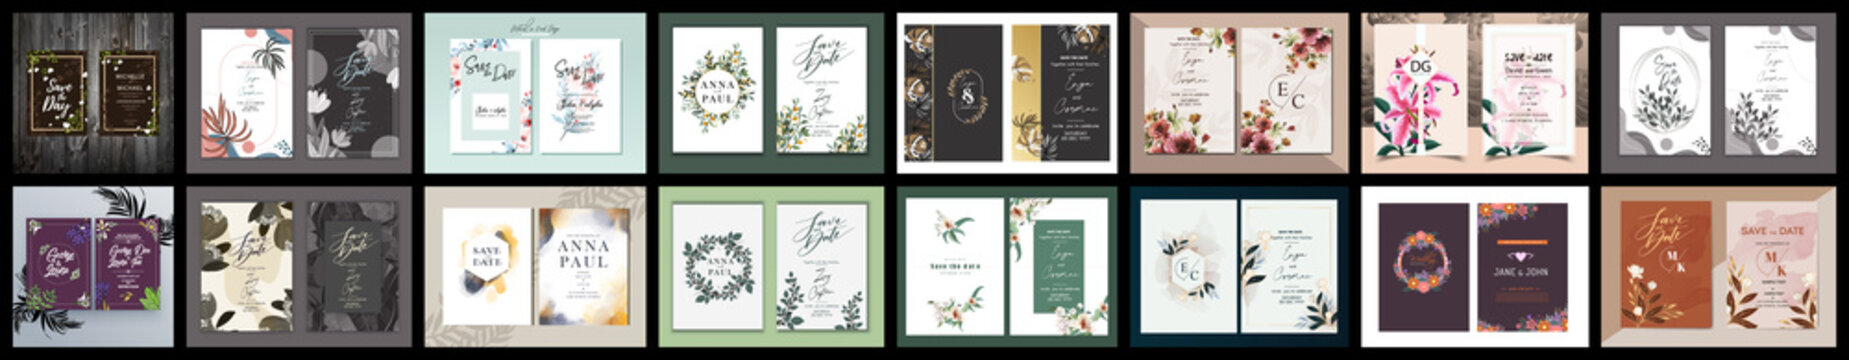 Floral Wedding Invitation card, save the date, thank you, rsvp, table label, tage template. Luxury wedding invitation card background with golden line art flower and botanical leaves, Organic shapes